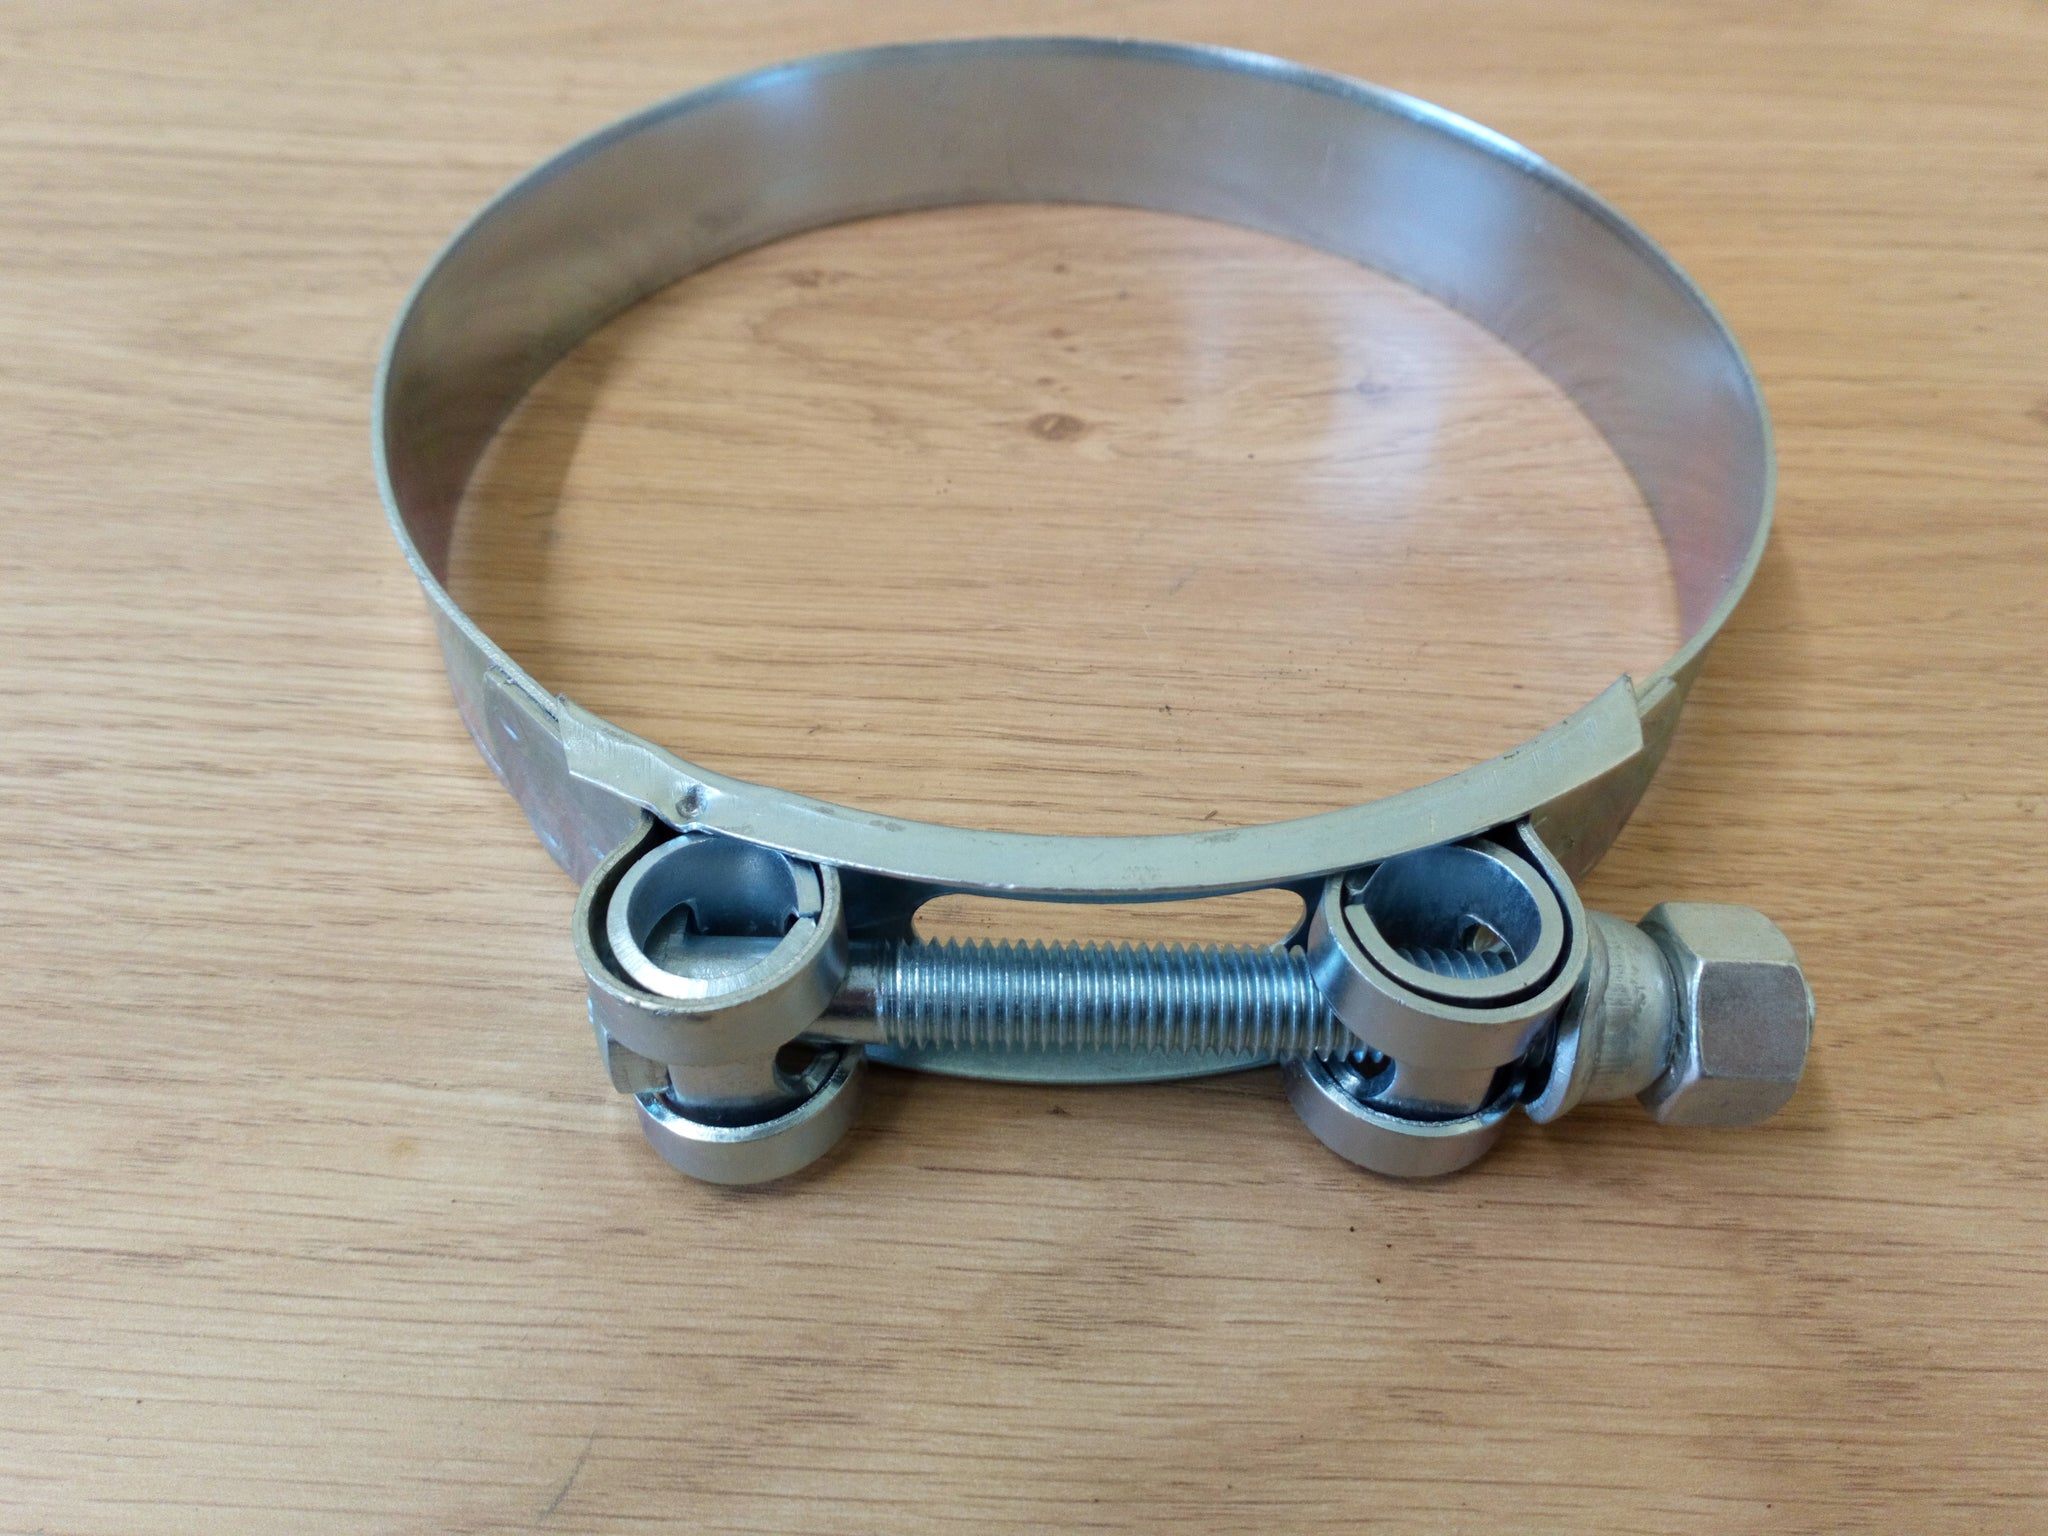 140-148 Hose Clamps